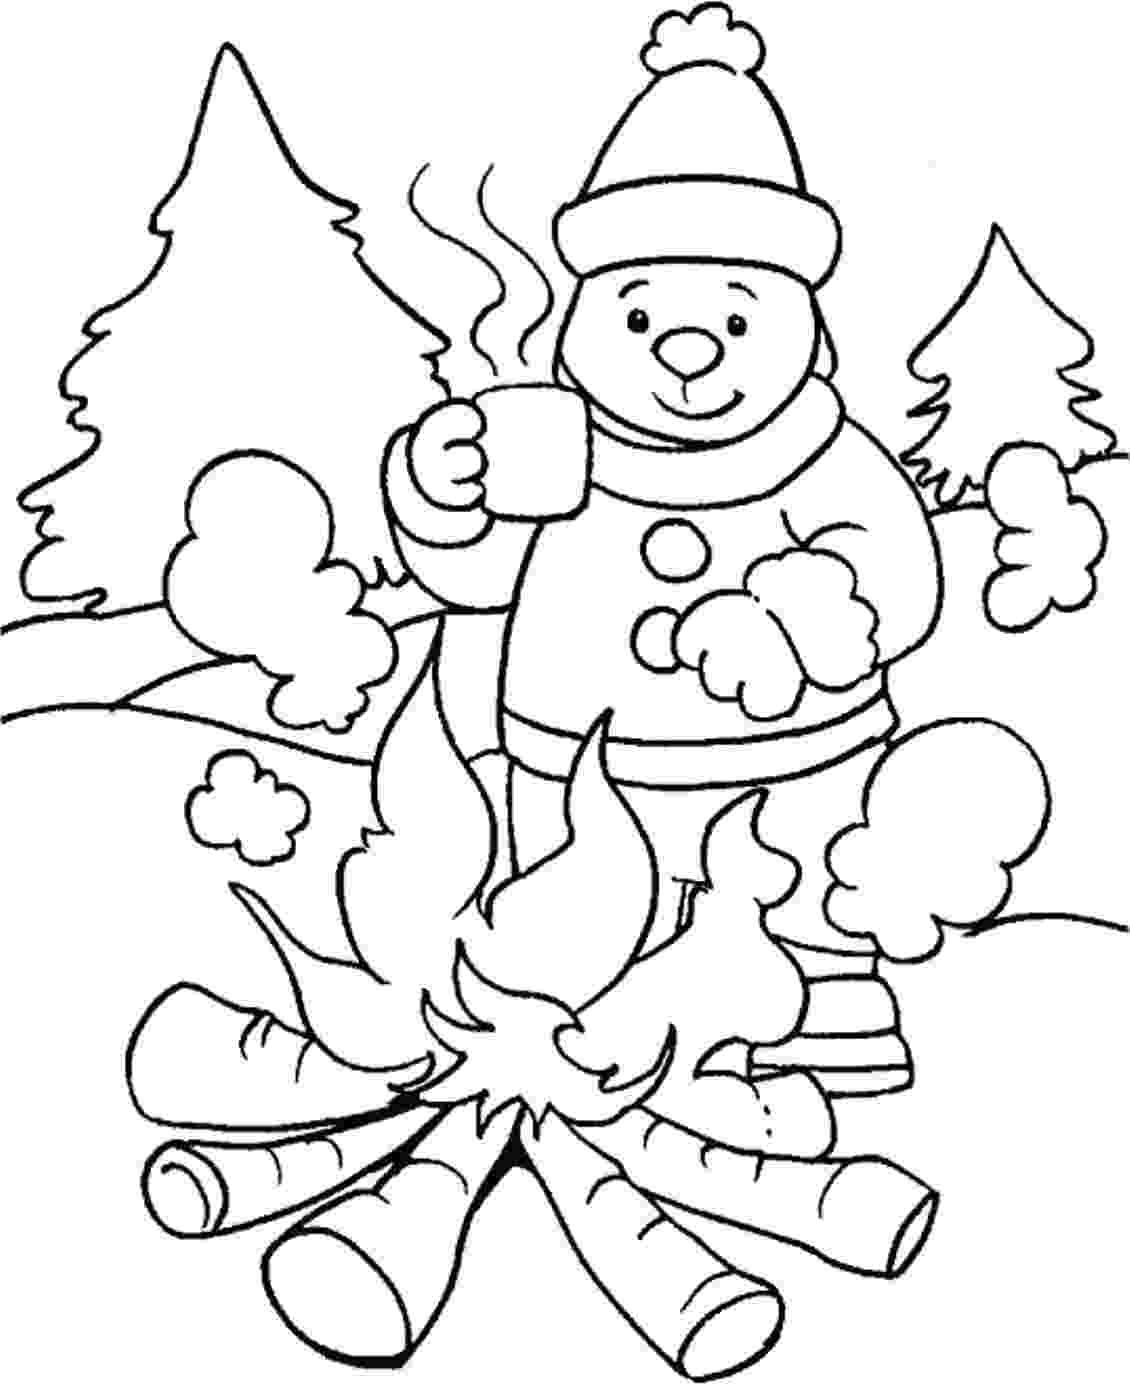 winter coloring sheets winter coloring pages to download and print for free coloring sheets winter